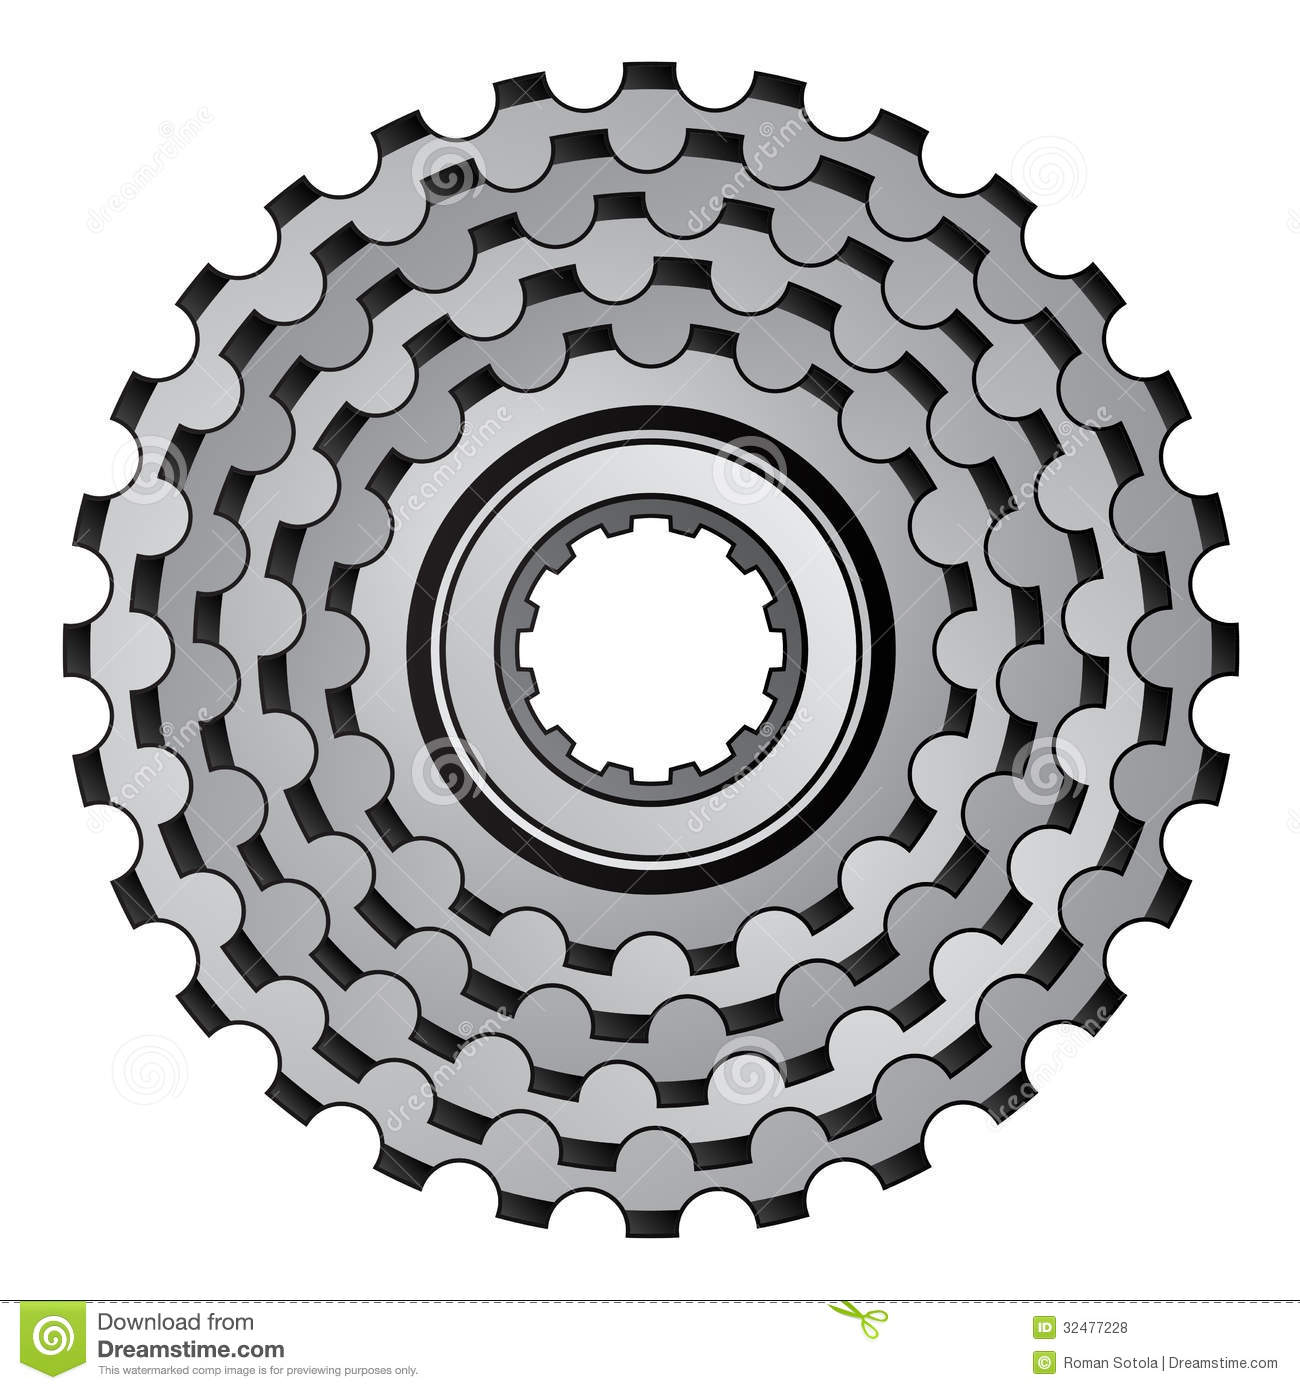 Bike Gear Bicycle gear cogwheel sprocket